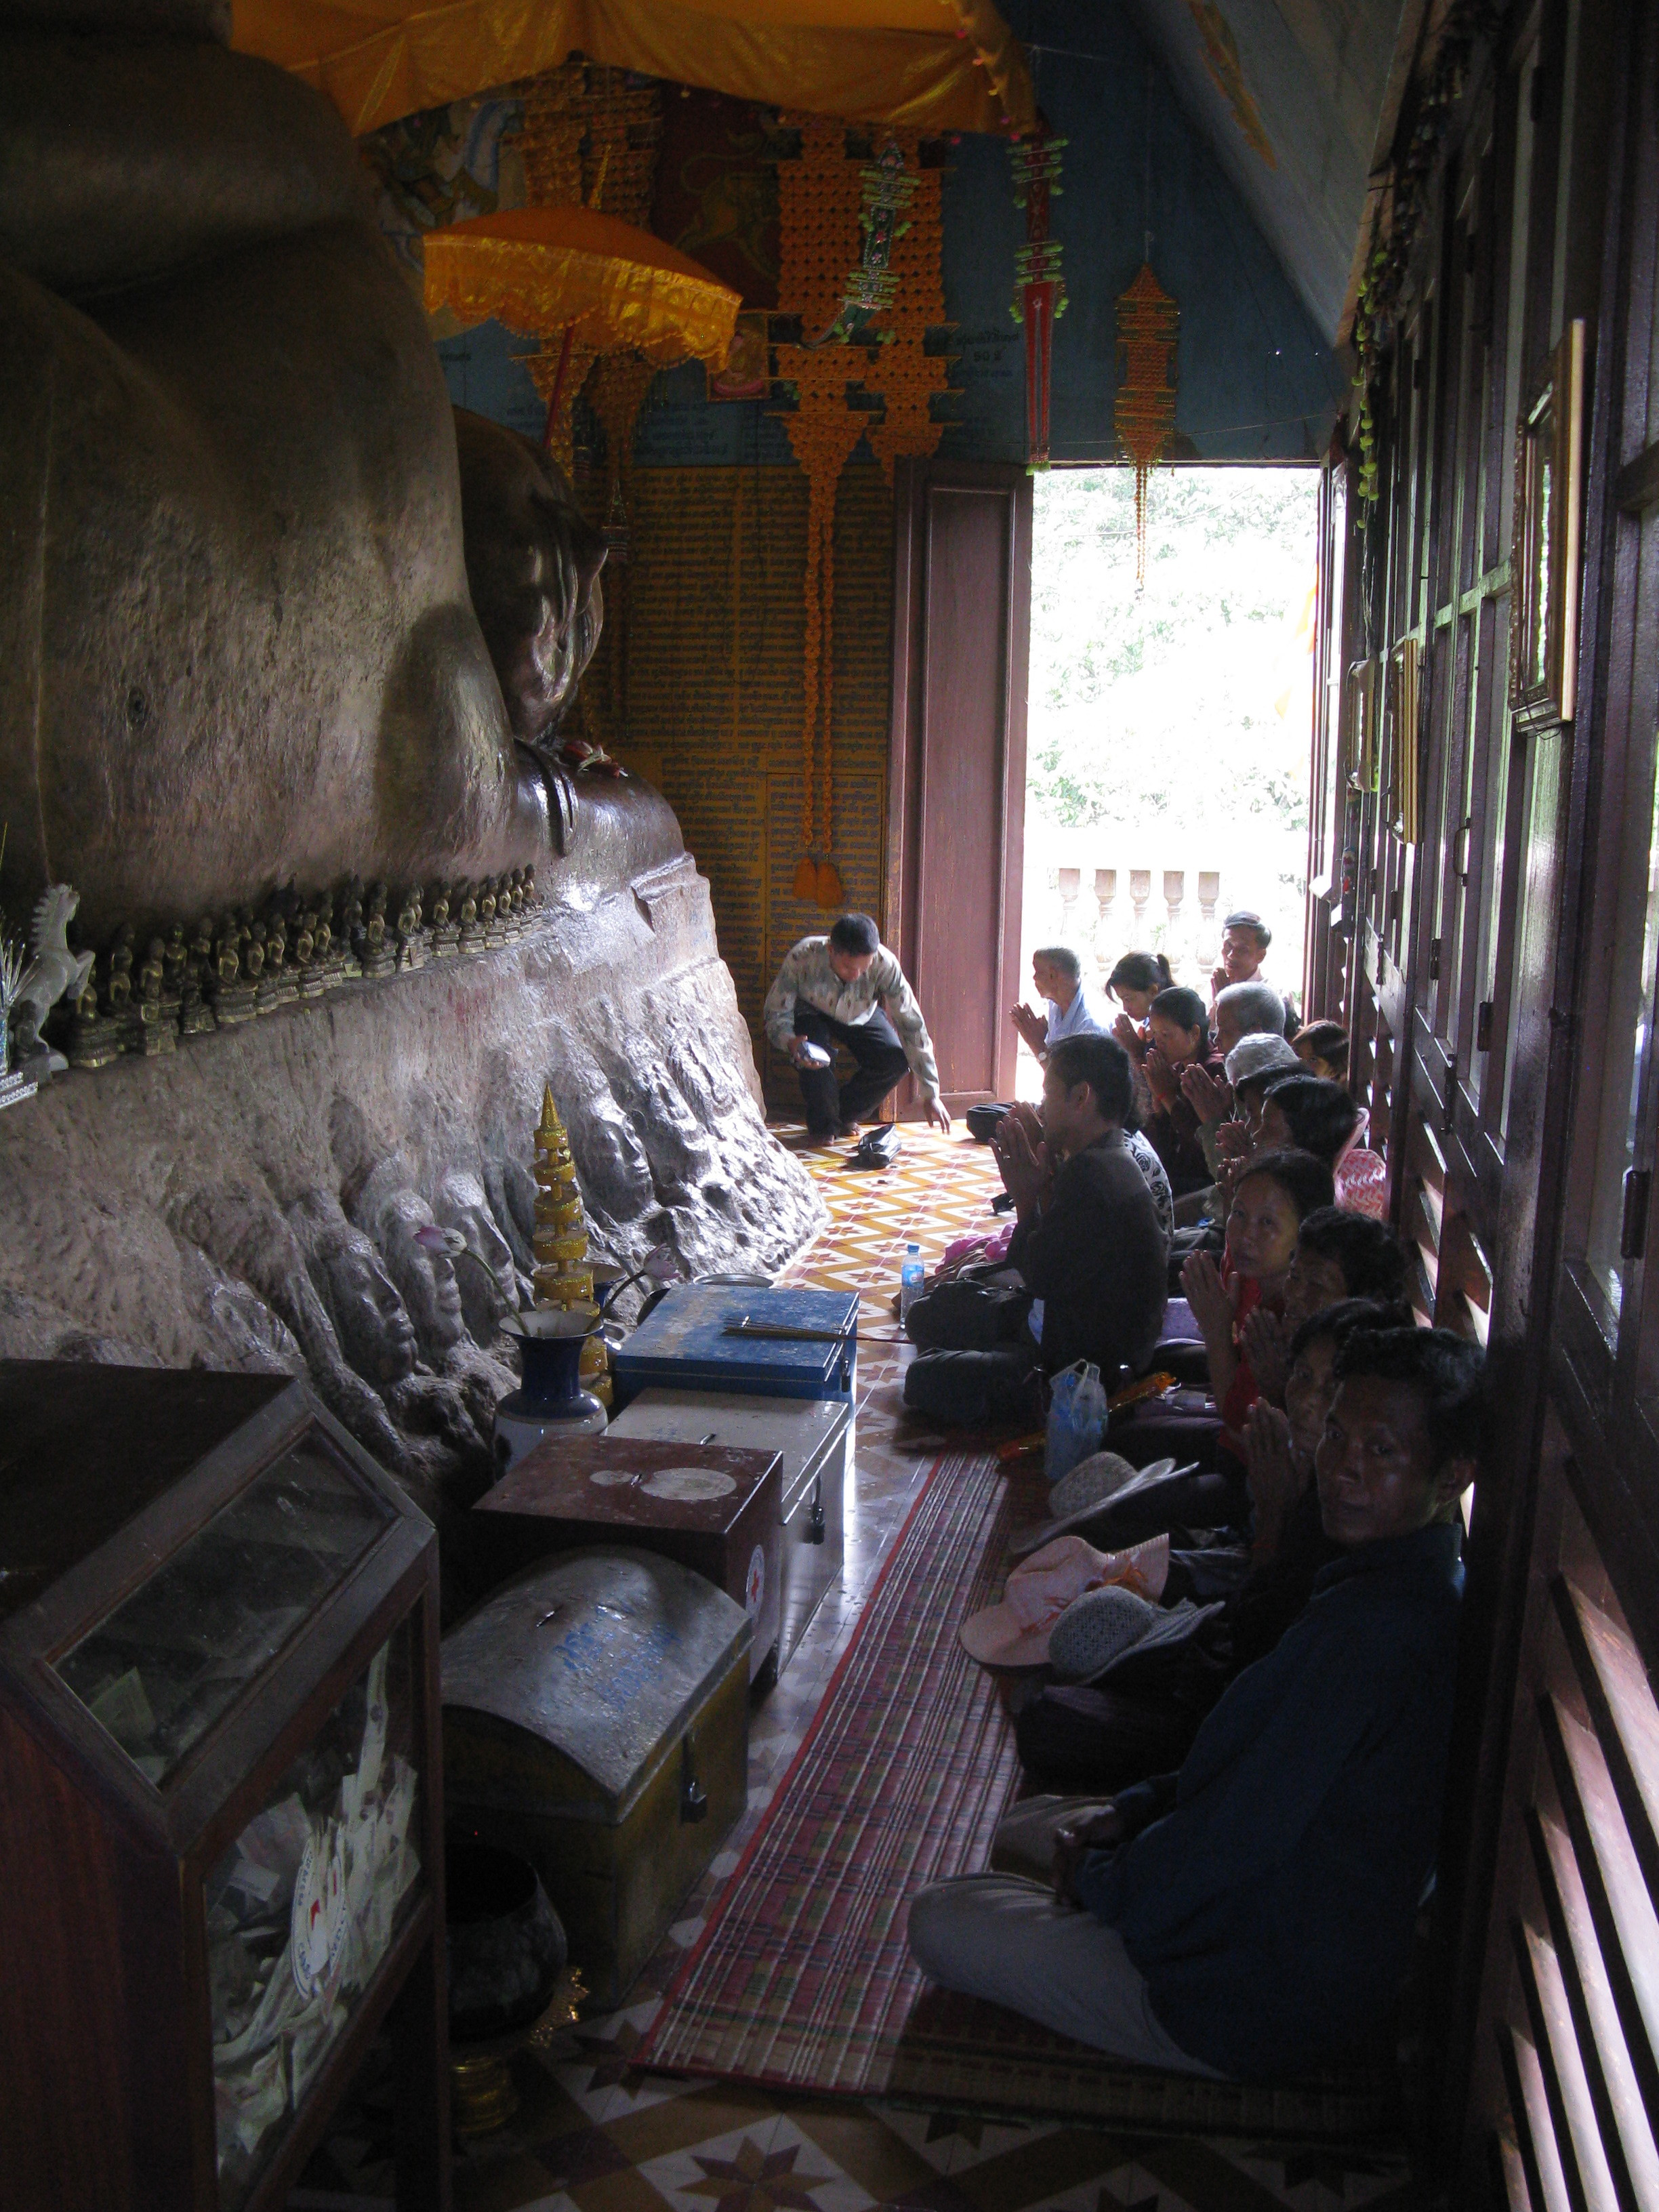 A large reclining Buddha carved out of the rock fills the temple at Preah Ang Thom